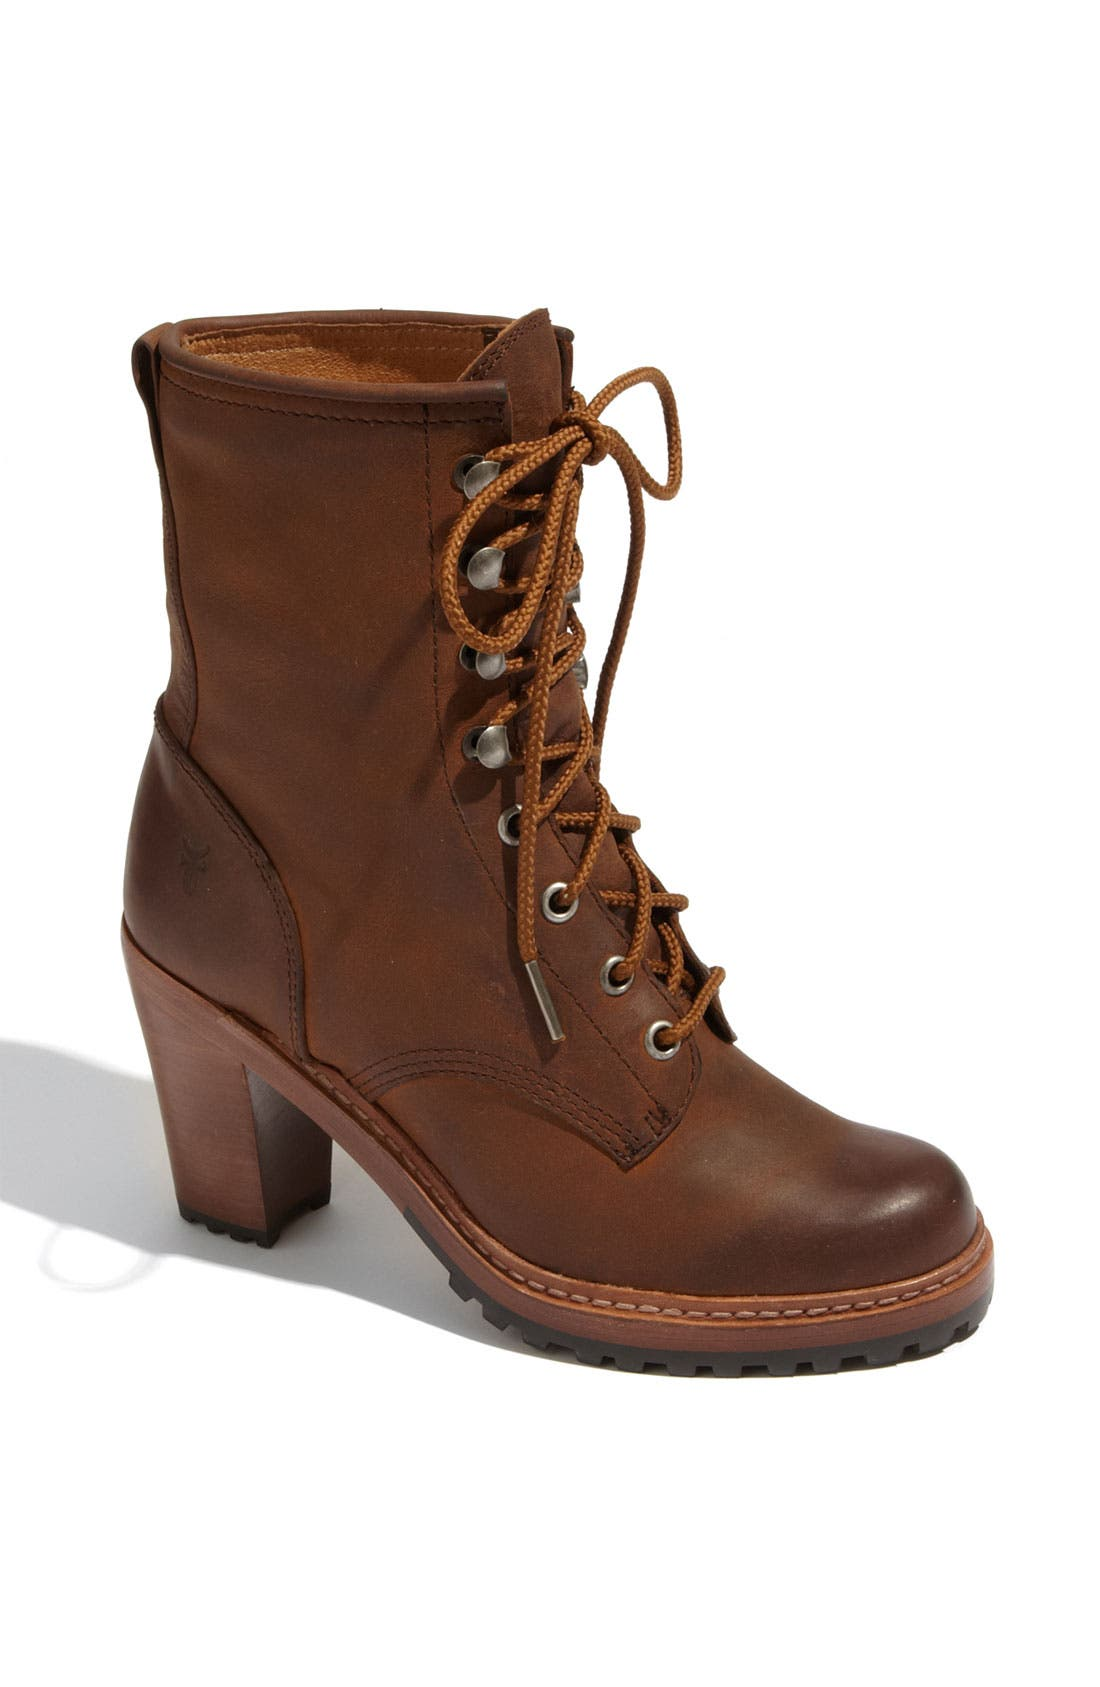 Alternate Image 1 Selected - Frye 'Lucy' Boot